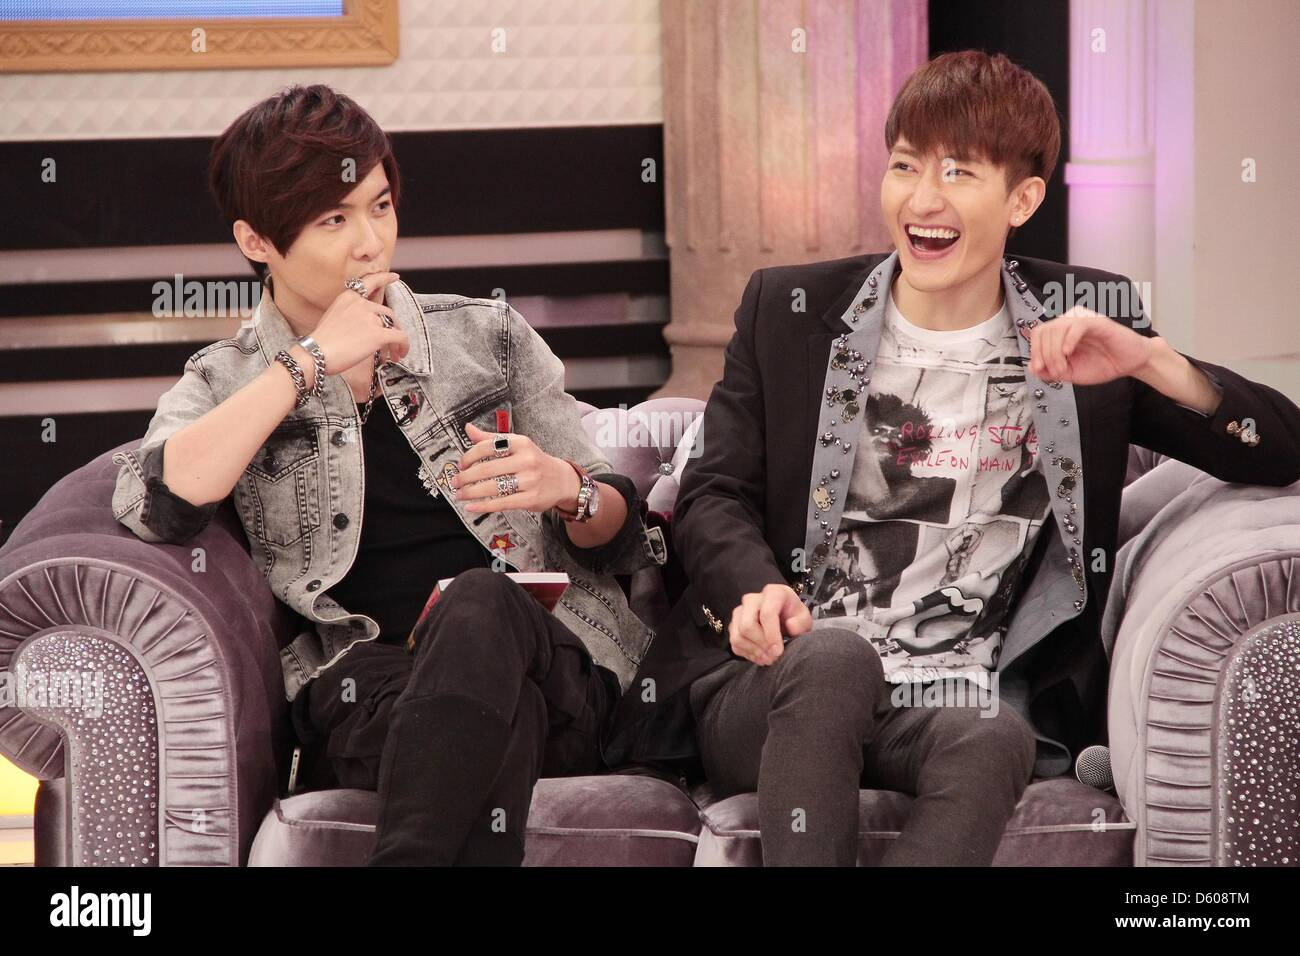 Zhou Mi, member of Super Junior M, attended SS Night Show with his